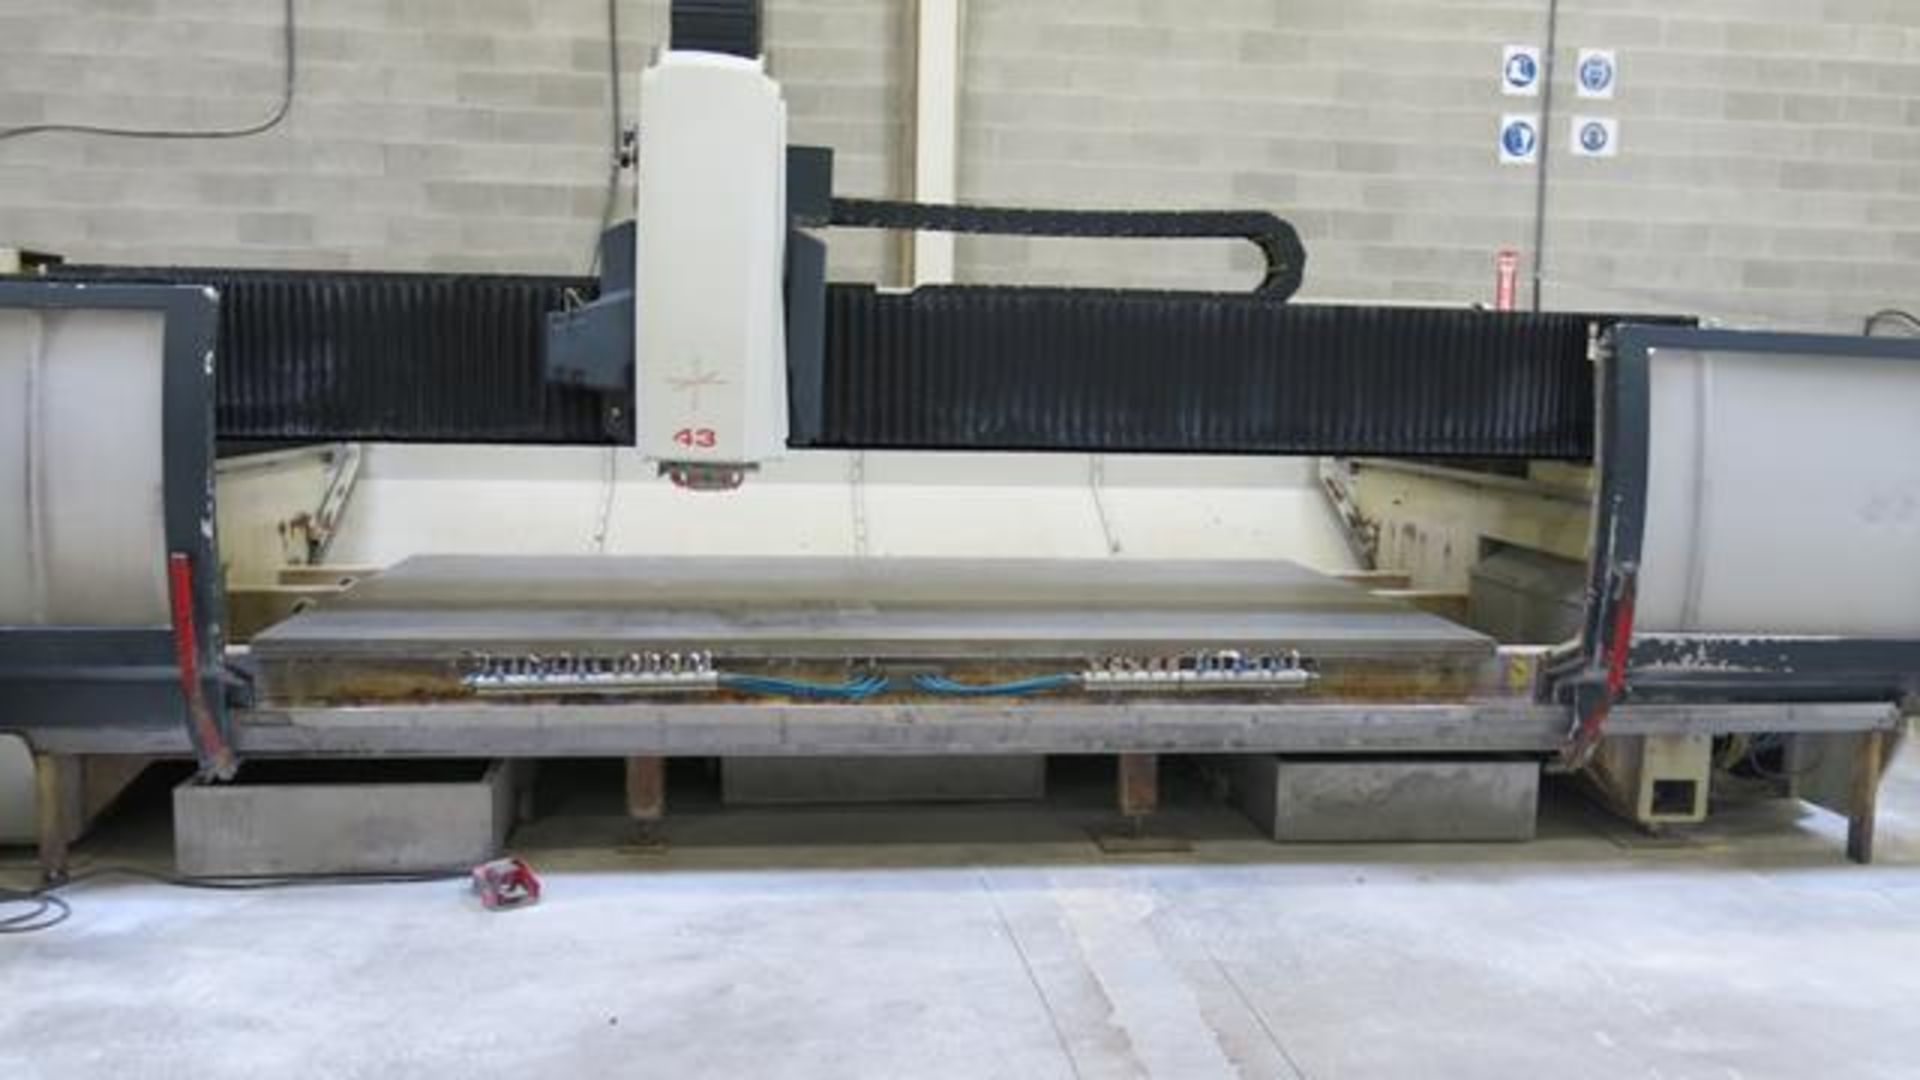 Lot 228 - INTERMAC, MASTER 43 STANDARD, CNC STONE AND GLASS MACHINING CENTRE, 16,890 HOURS, S/N 59958, 2005